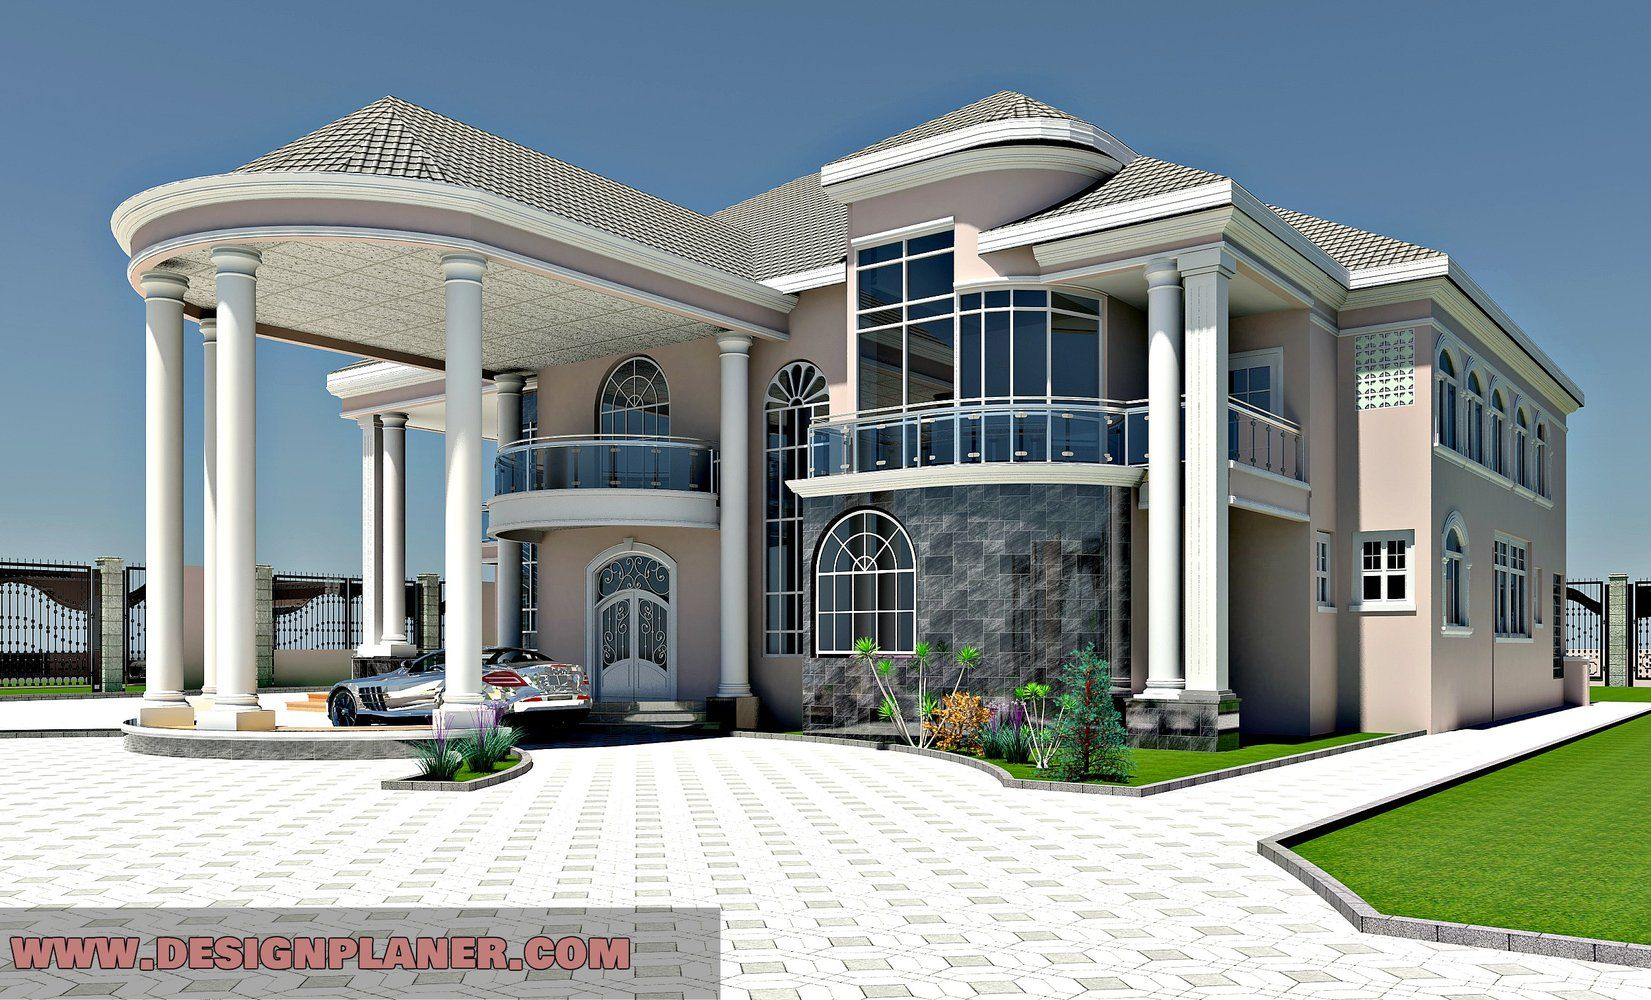 5 Bedroom House Classic House Design Luxury House Designs Duplex House Design